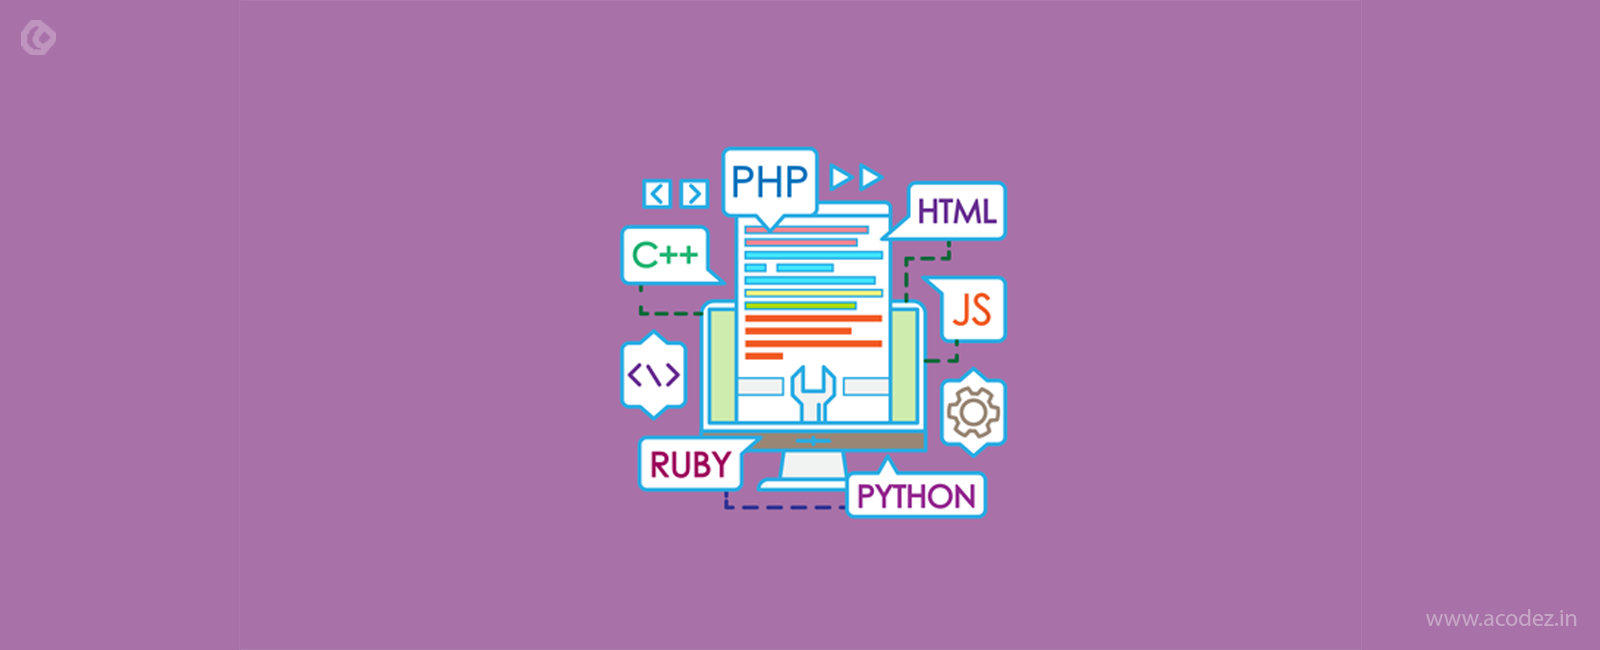 13 Most Popular Programming Languages of 2018 | Acodez